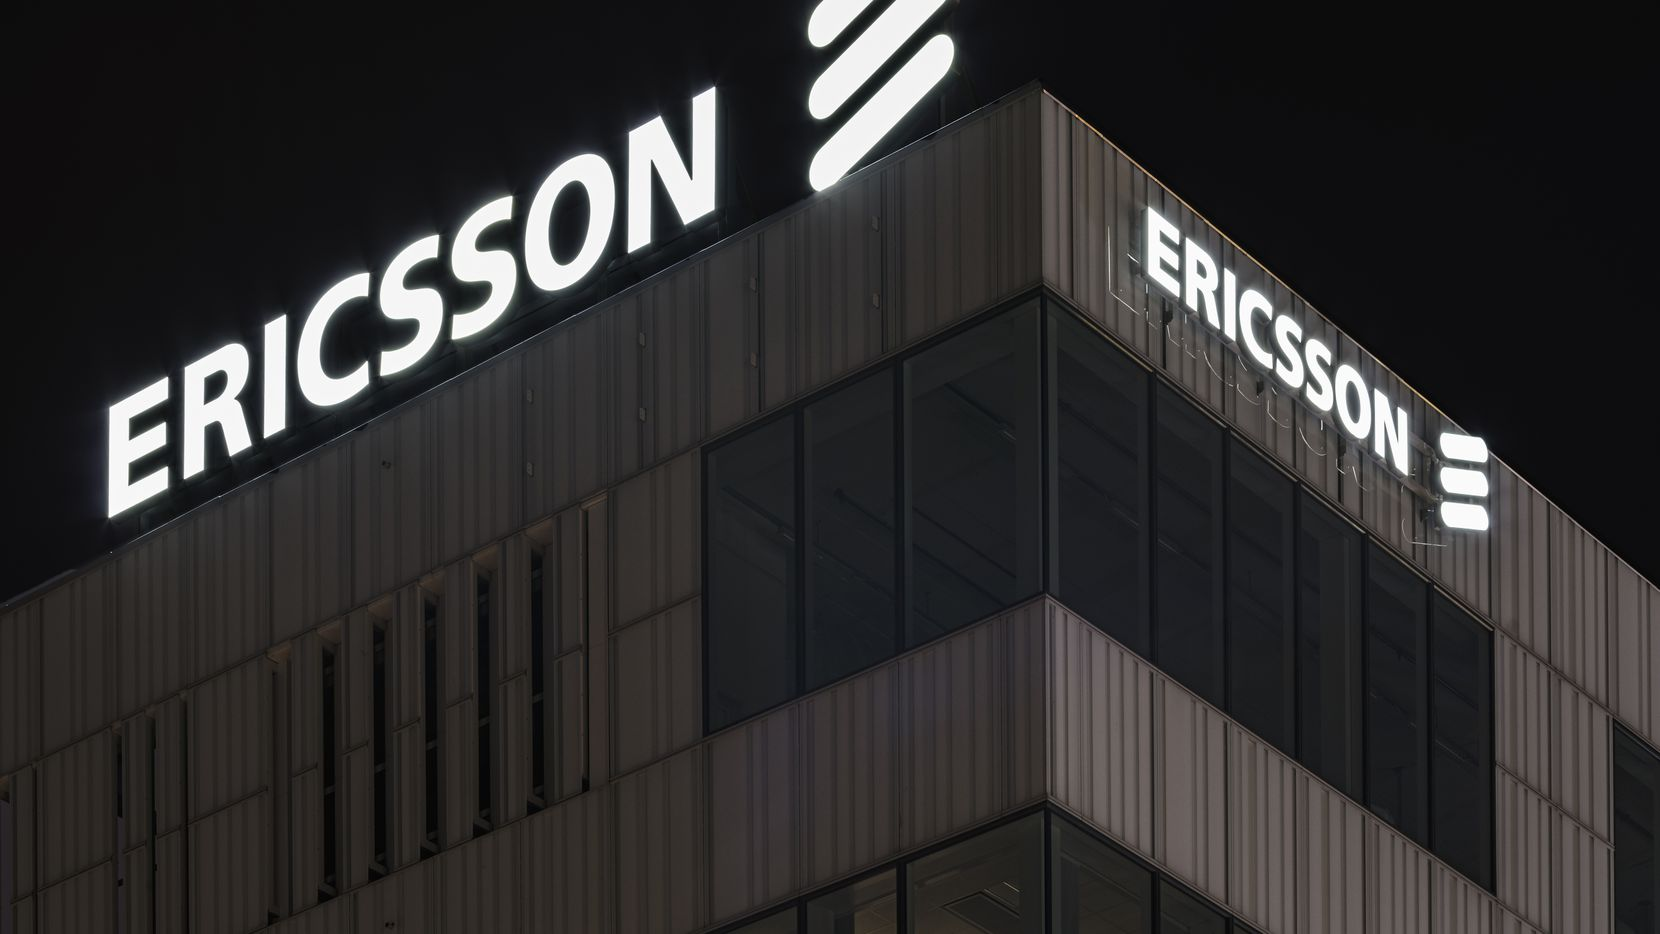 Ericsson's ethics breaches rank among the costliest corruption cases on record.